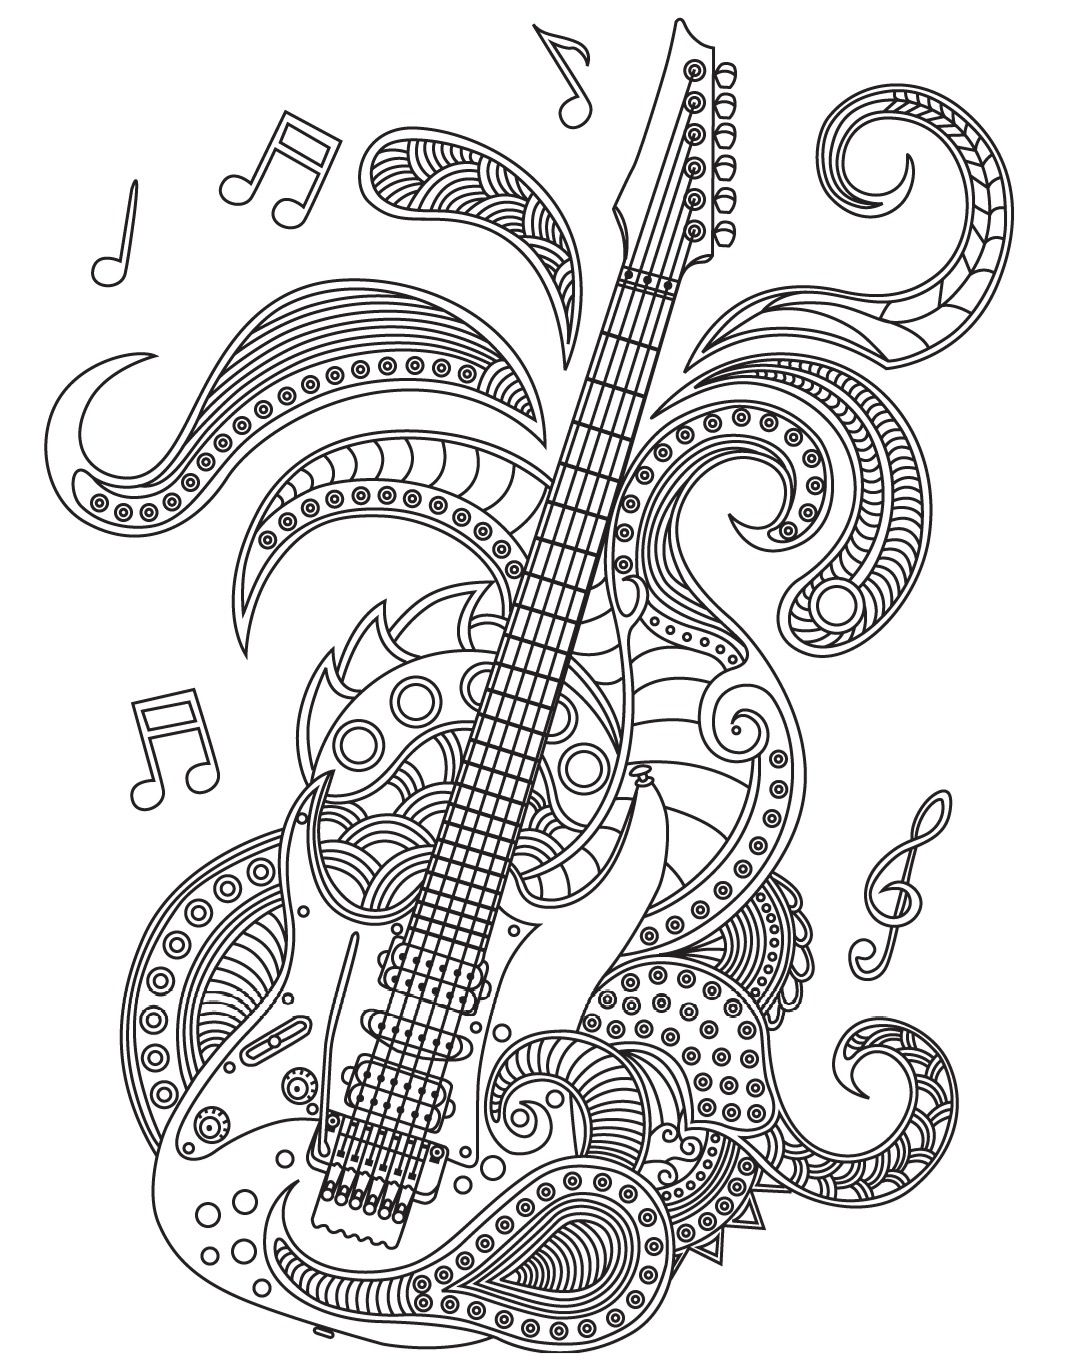 Awesome coloring pages for adults believe coloring pages for Awesome coloring page